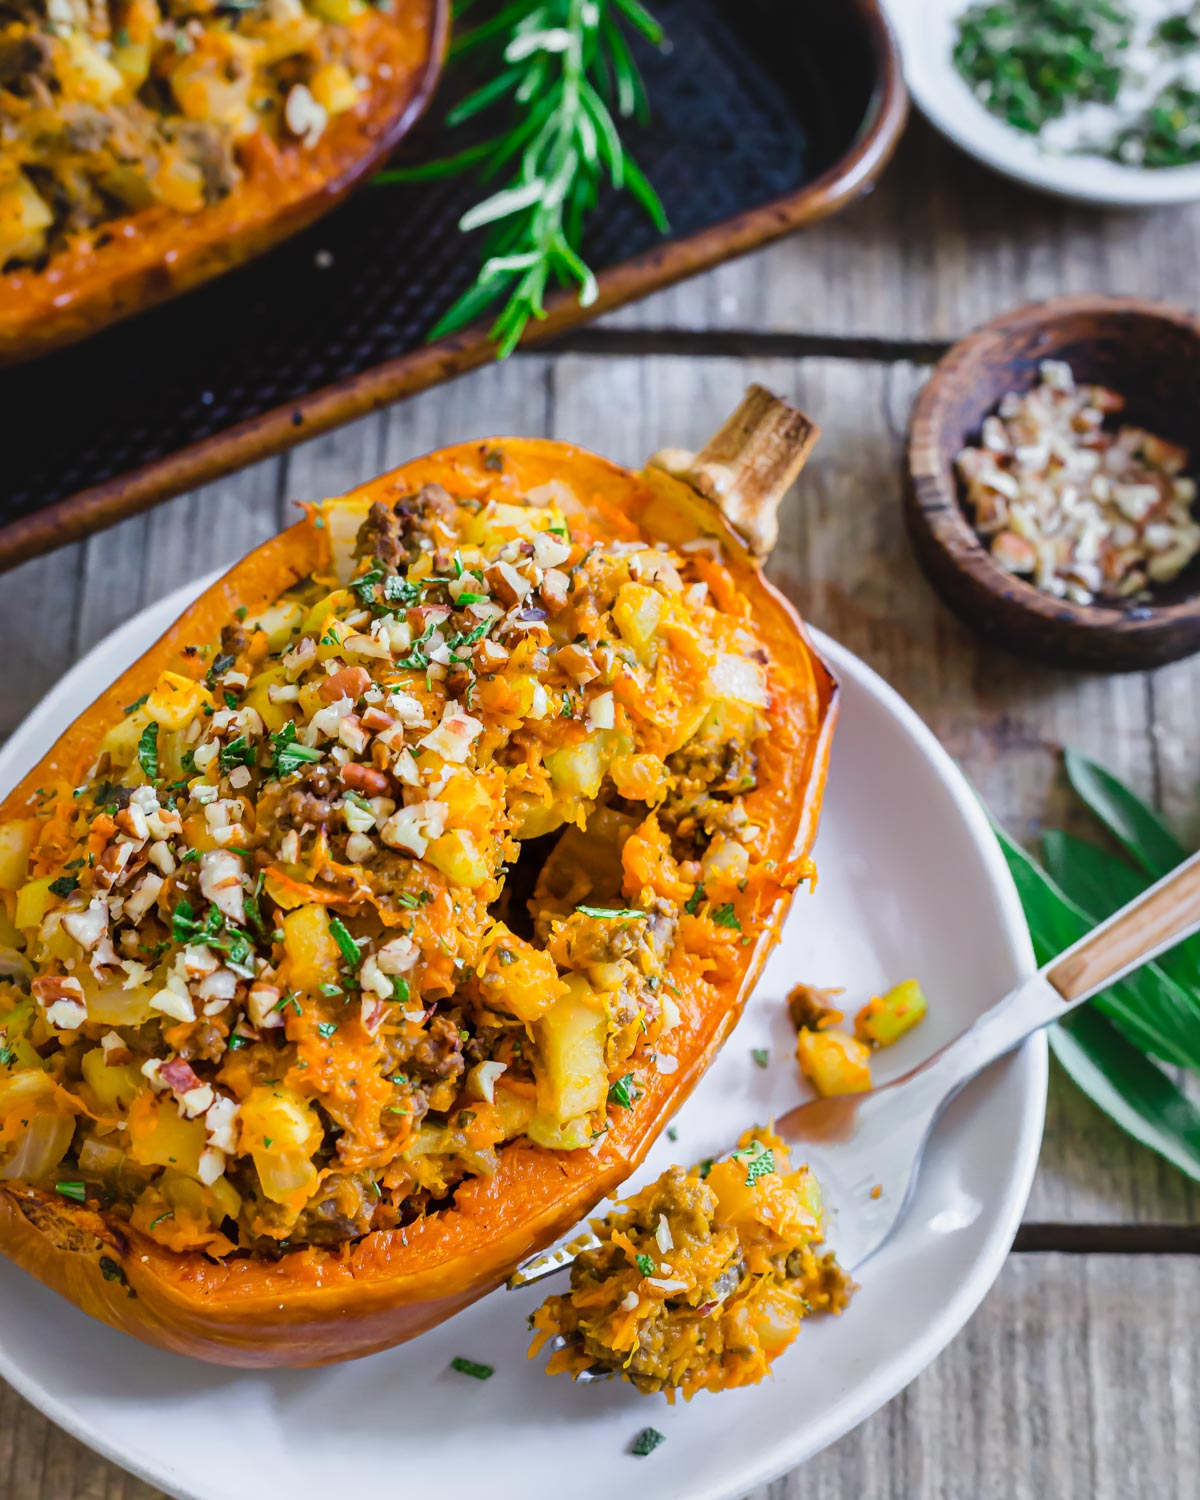 Petite sized honeynut squash are perfect for roasting and stuffing. Enjoy both methods with this fall inspired easy recipe.